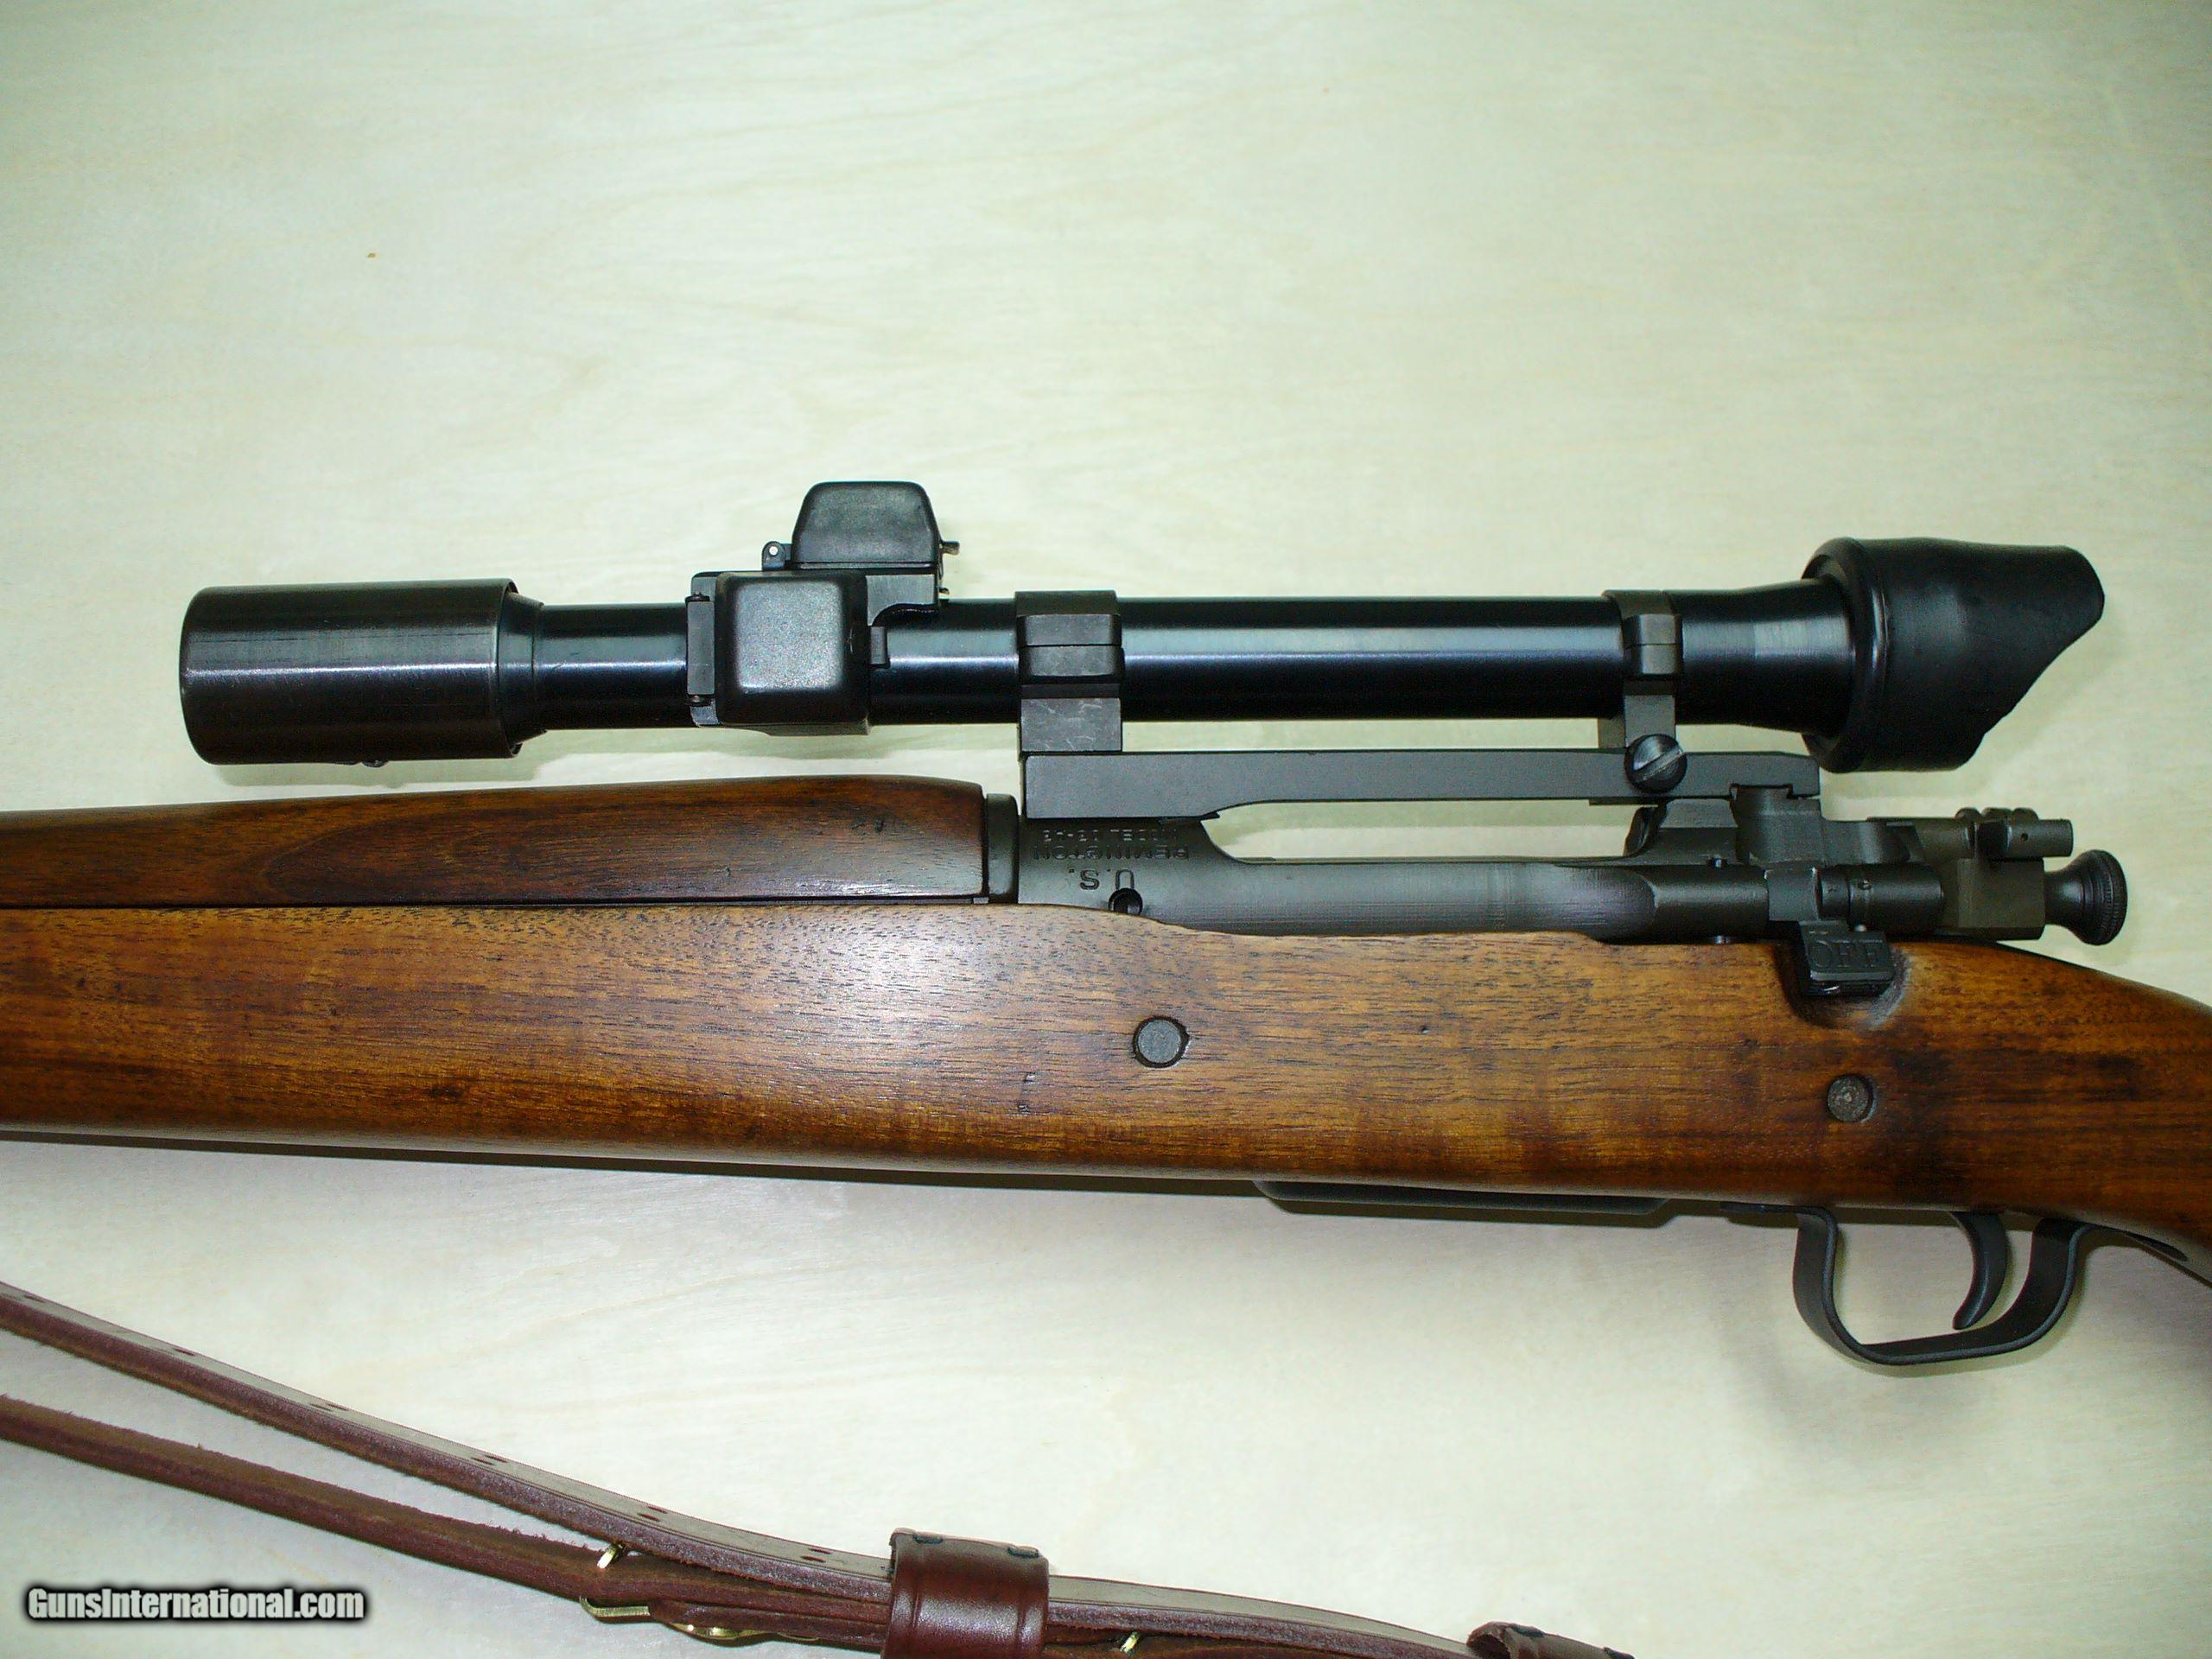 Remington Military Rifles >> Remington, 1903-A4 ORIGINAL WWII SNIPER RIFLE EQUIPPED WITH RARE M84 SCOPE